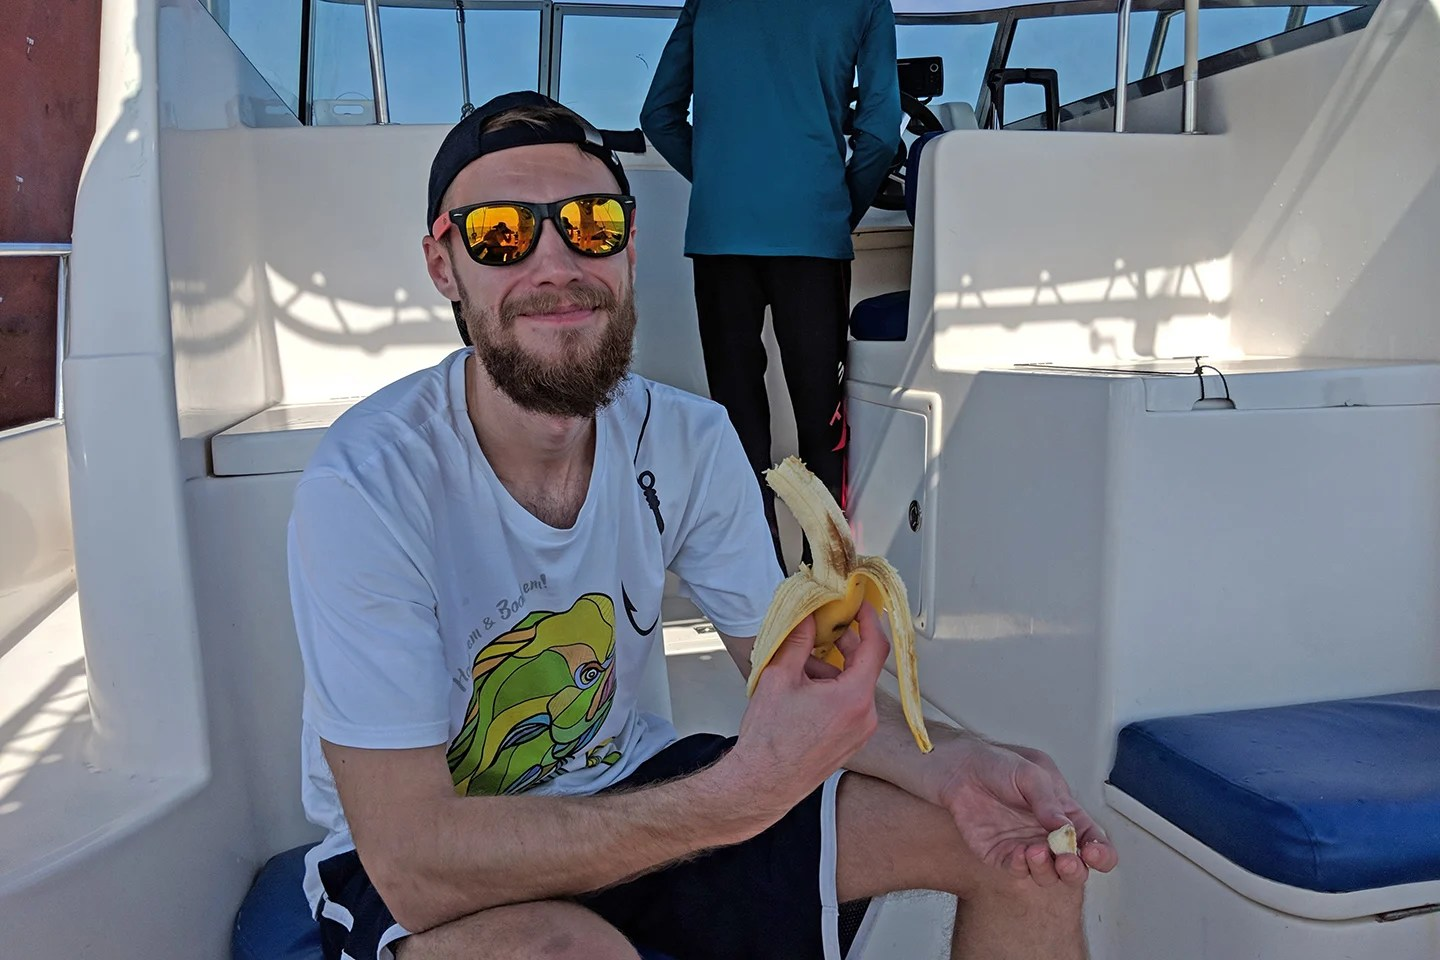 A male angler in a cap and sunglasses eating a banana on a charter fishing boat